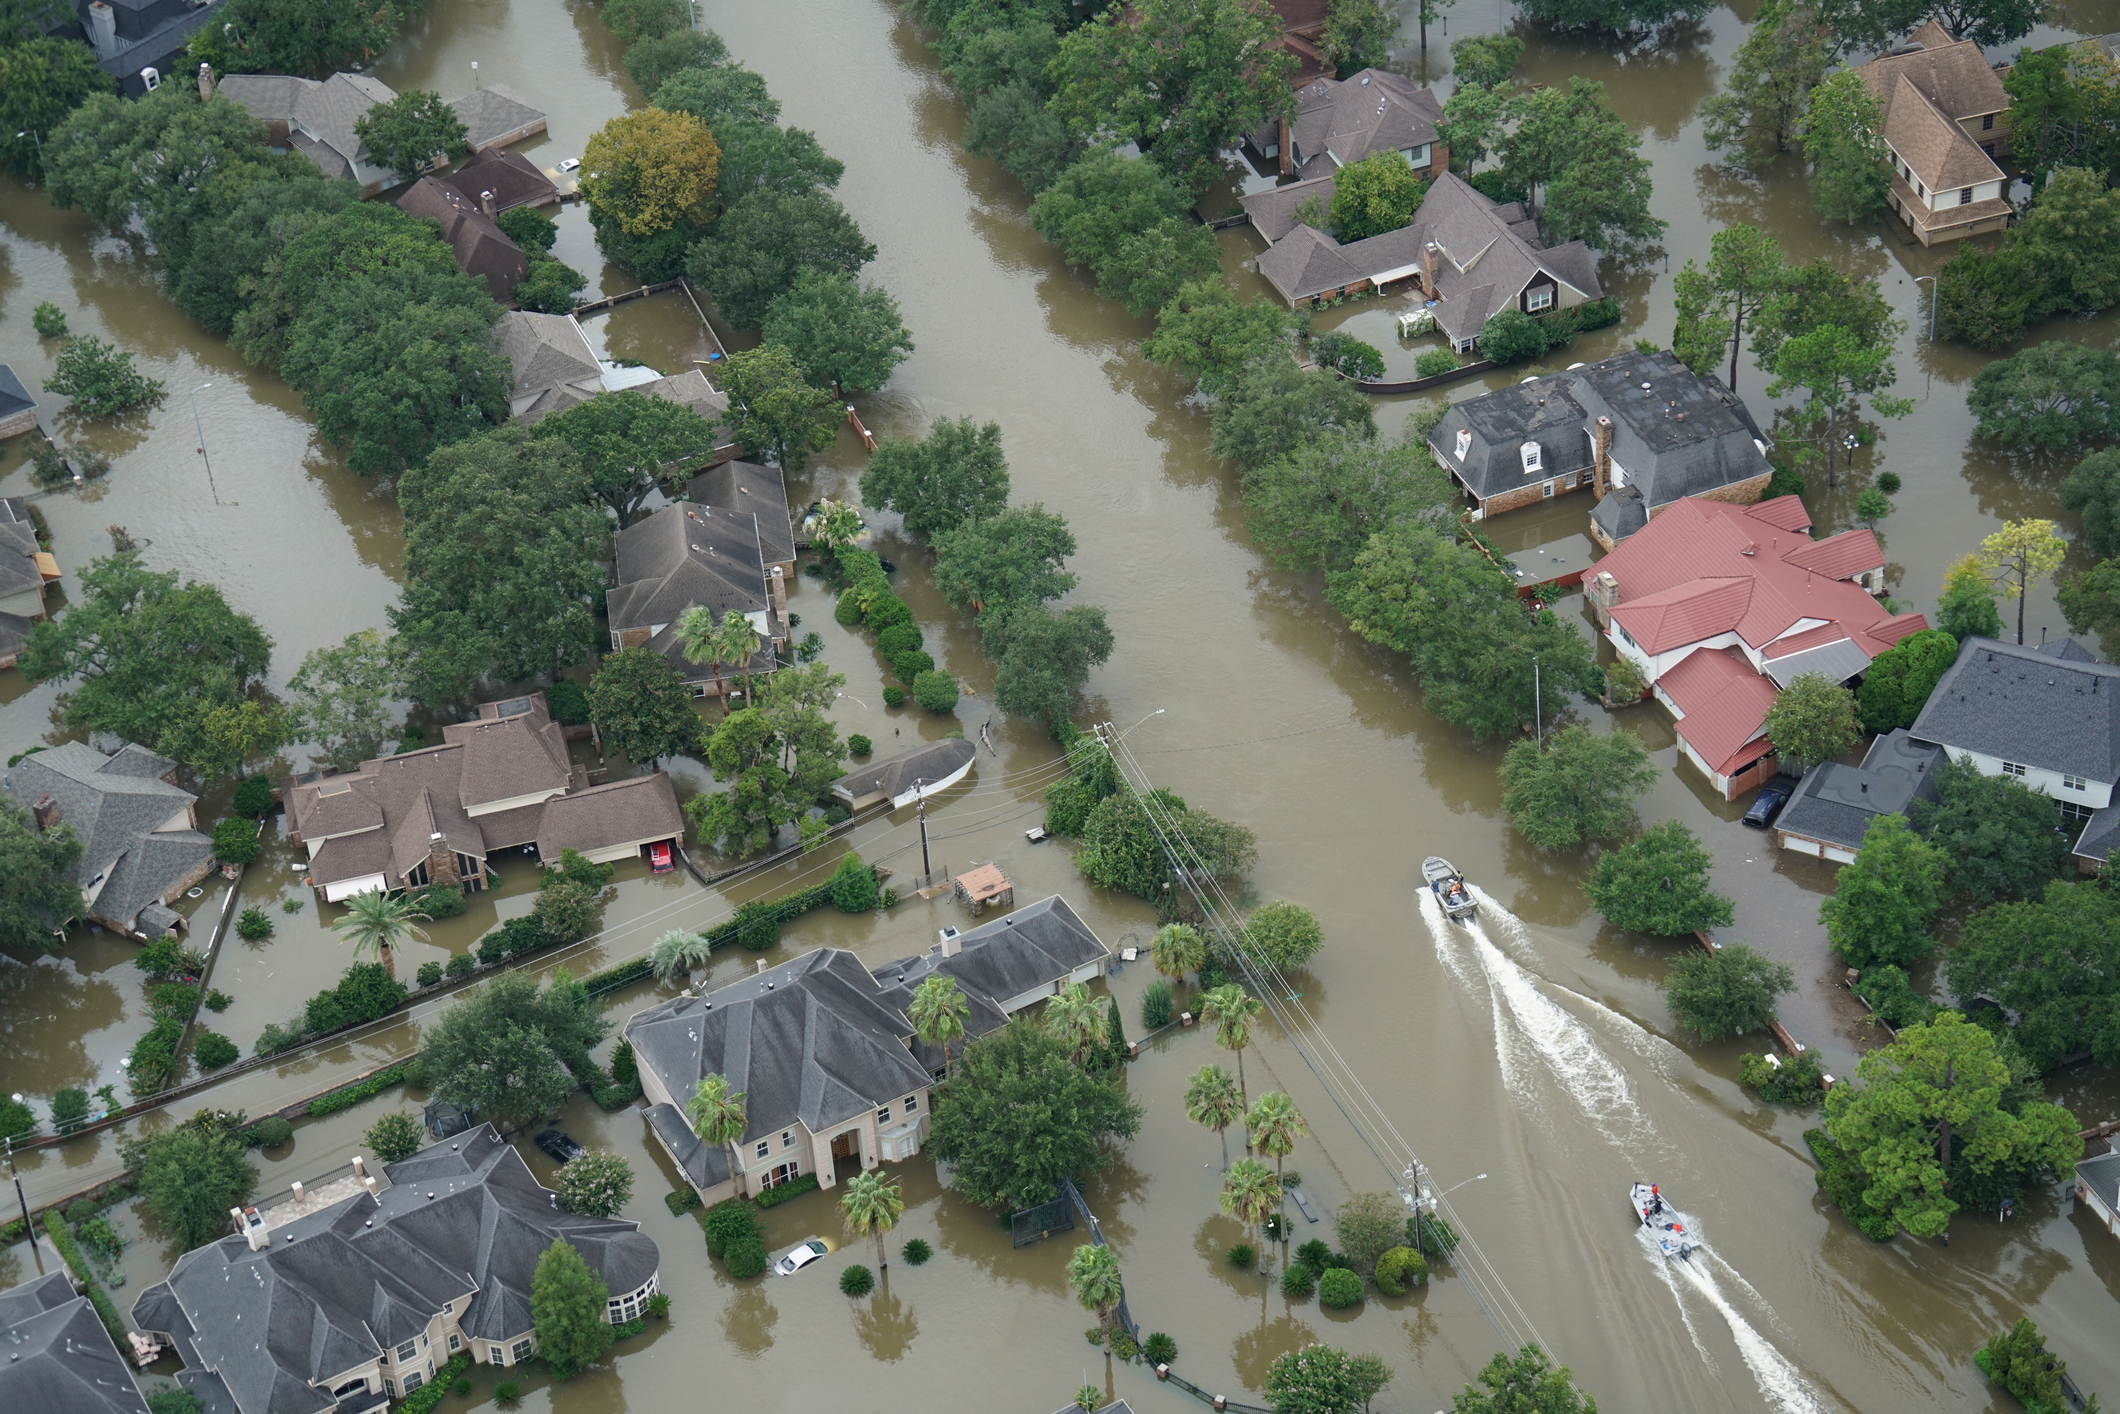 FEMA'S HIGH WATER MARK INITIATIVE: IS YOUR PROPERTY AT FLOOD RISK?